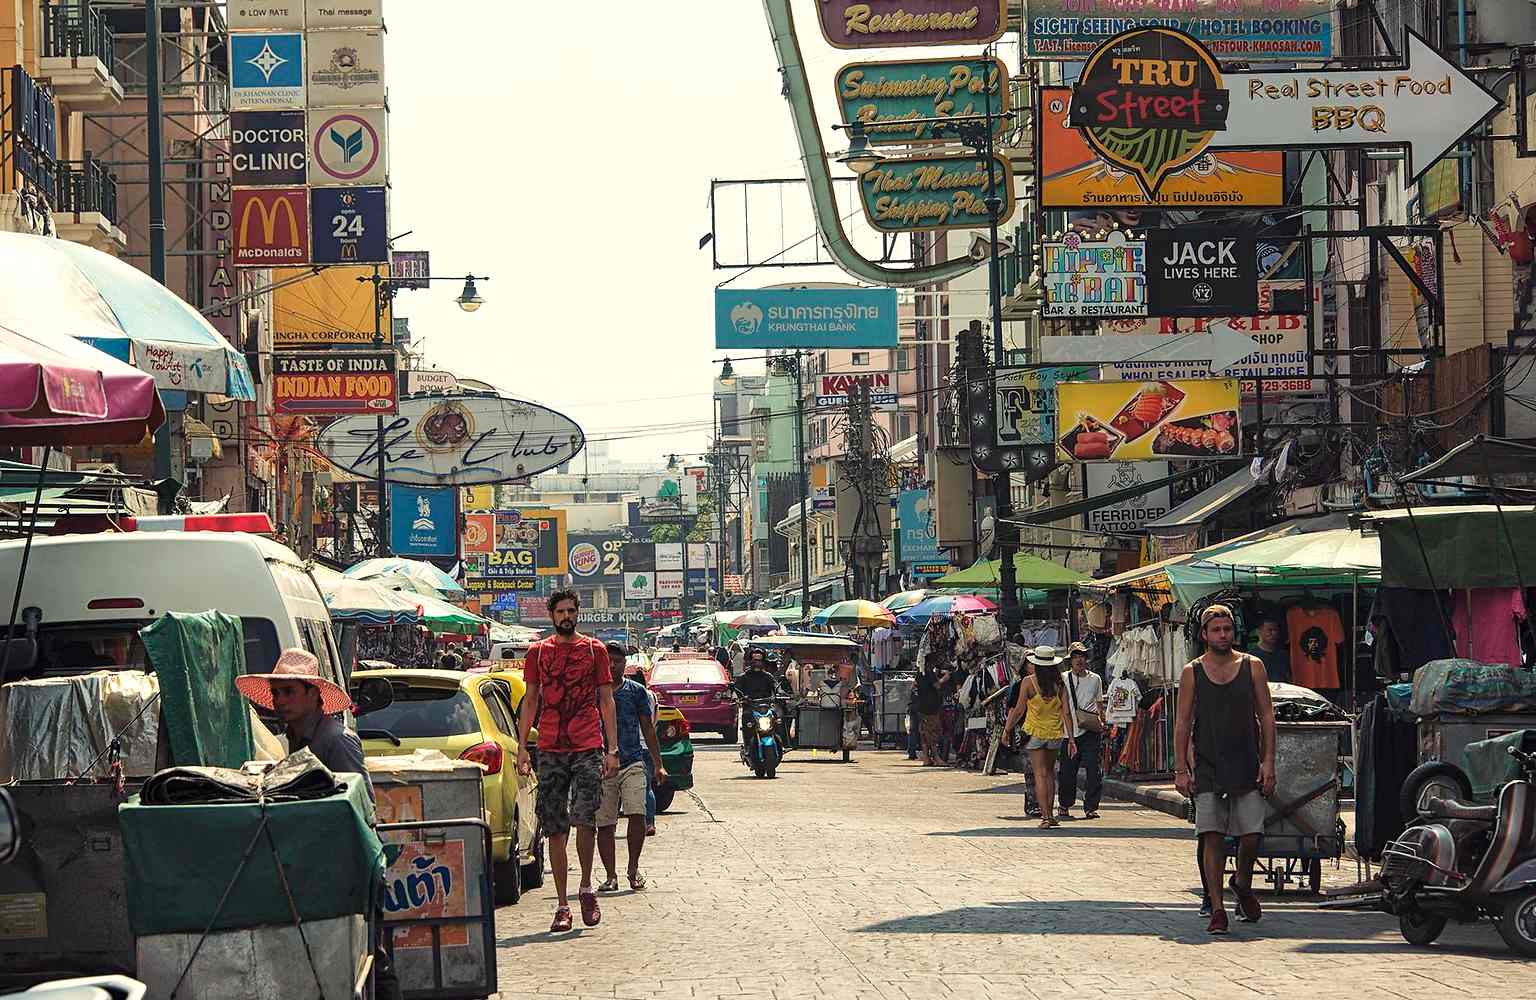 Khao San Road, street full of bars, restaurants and tourists